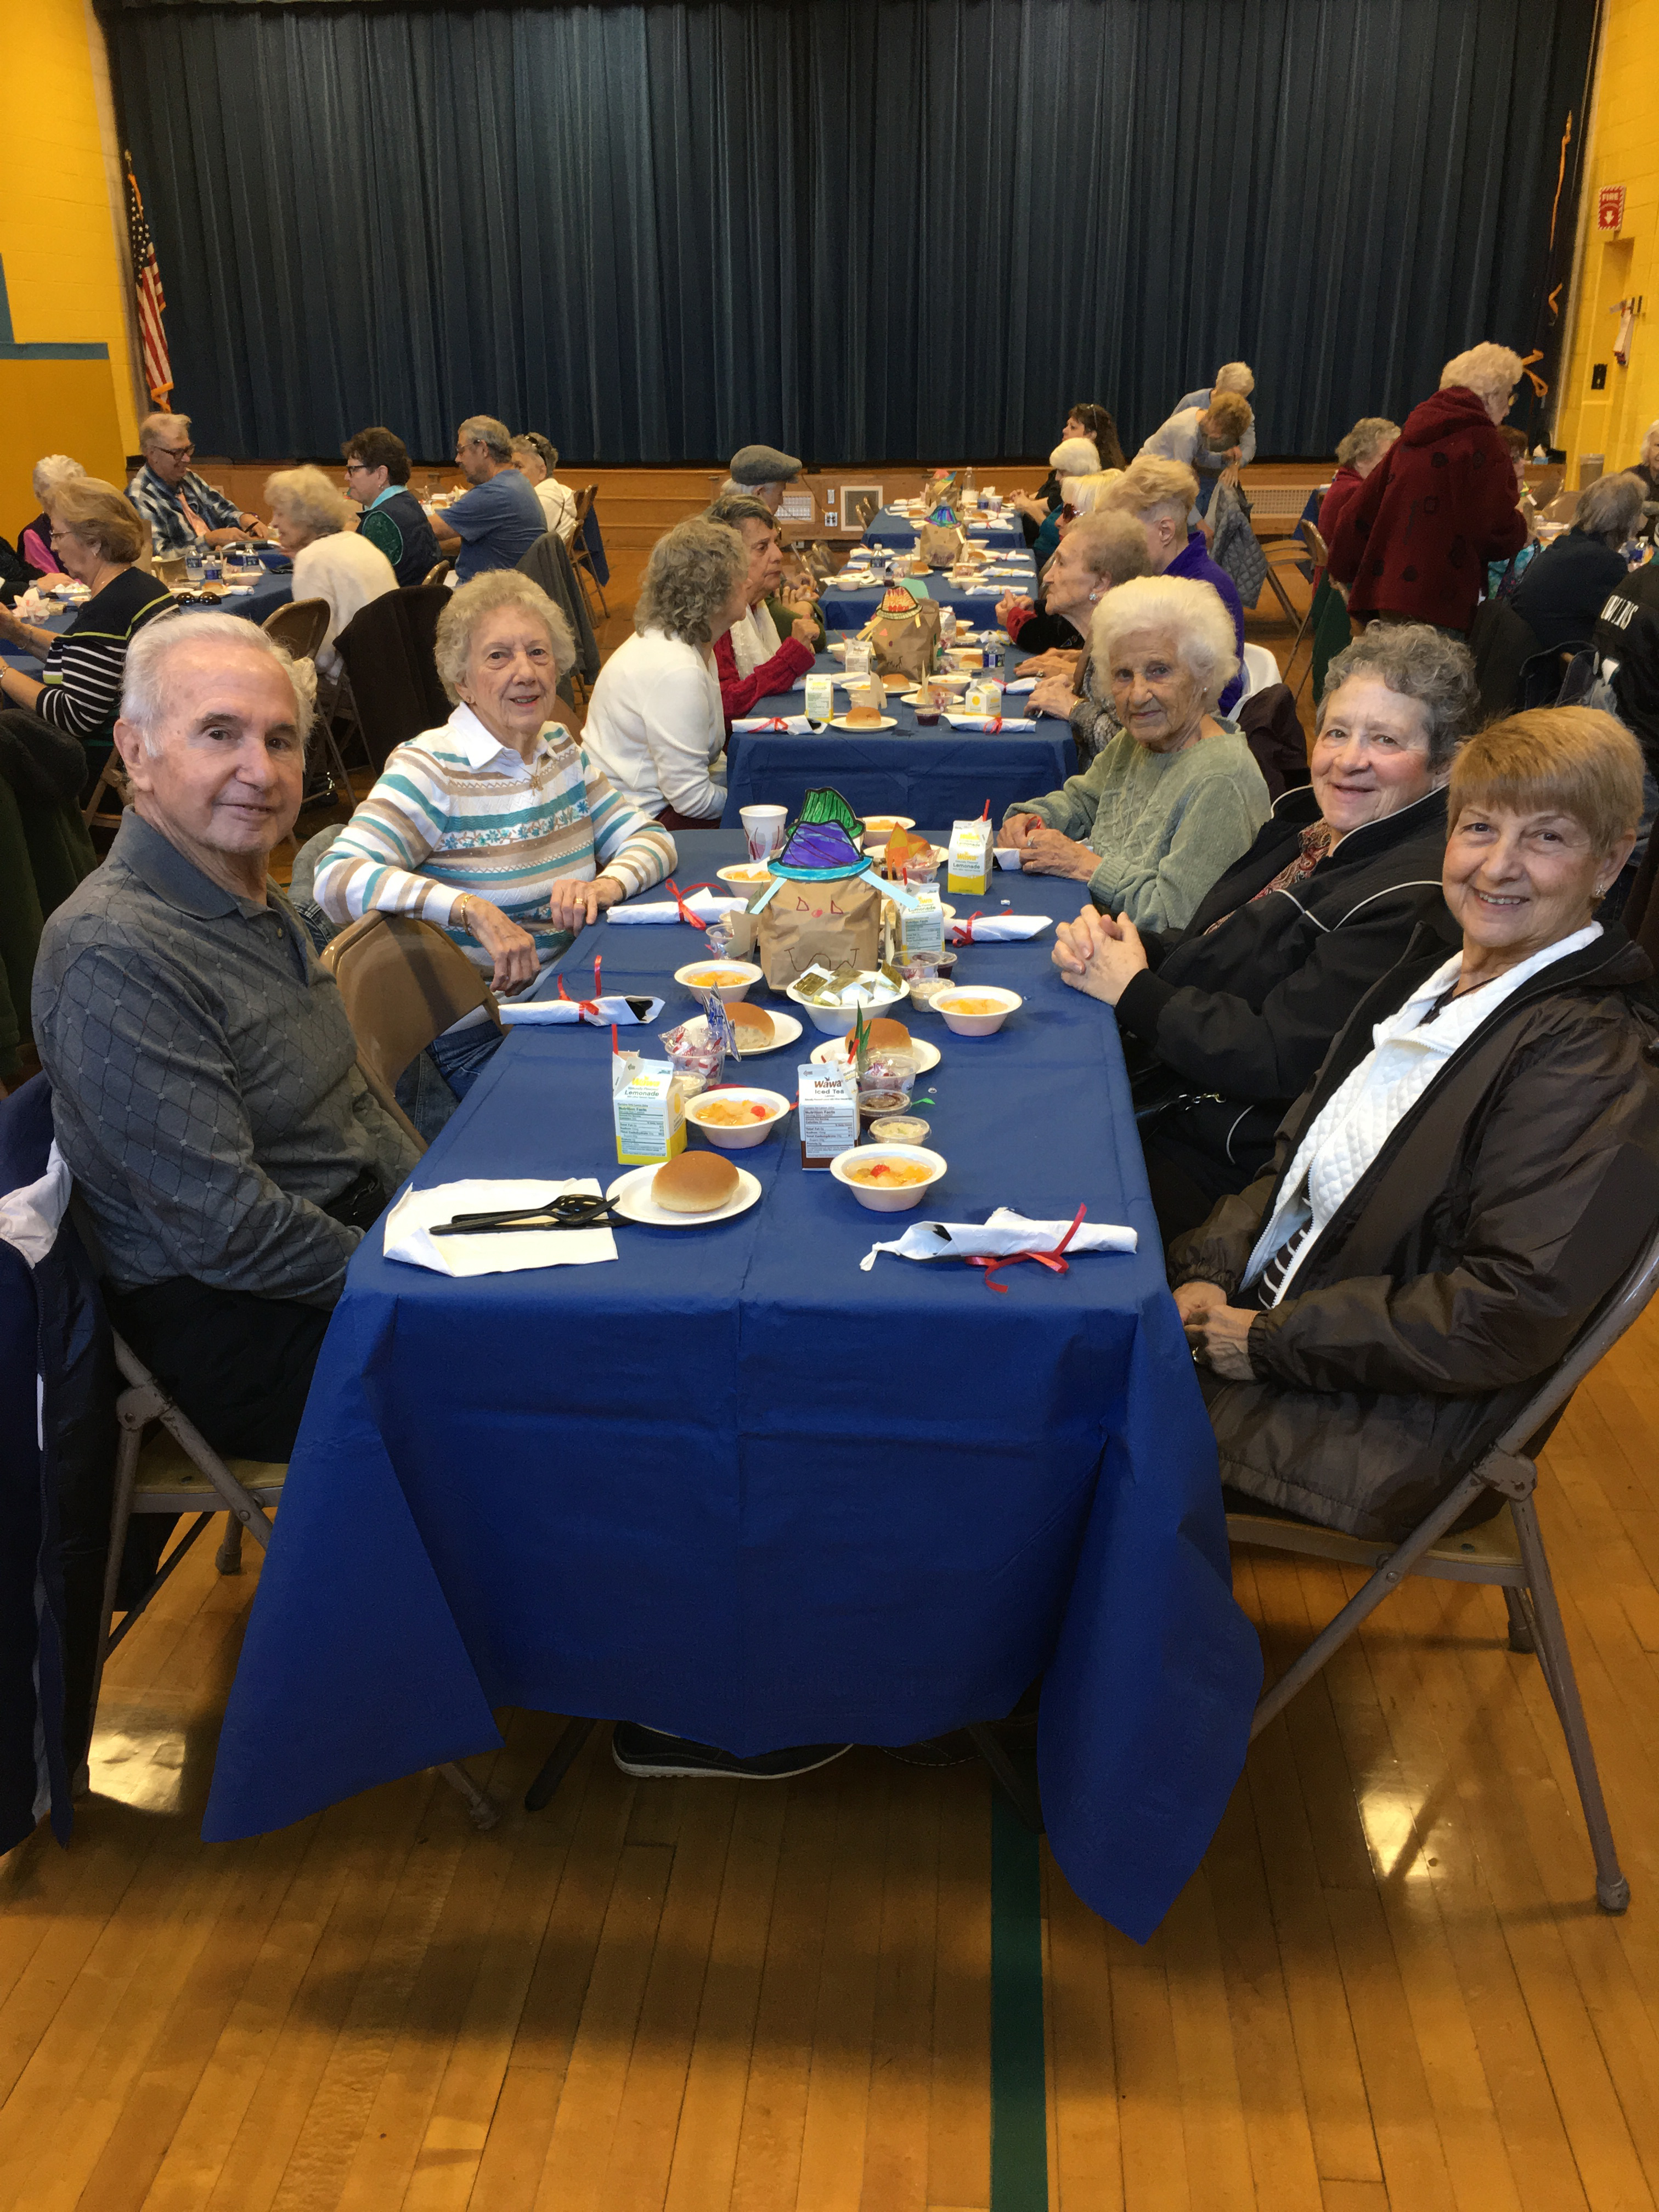 Seniors citizens seated at a table set for dinner smiling at the camera.